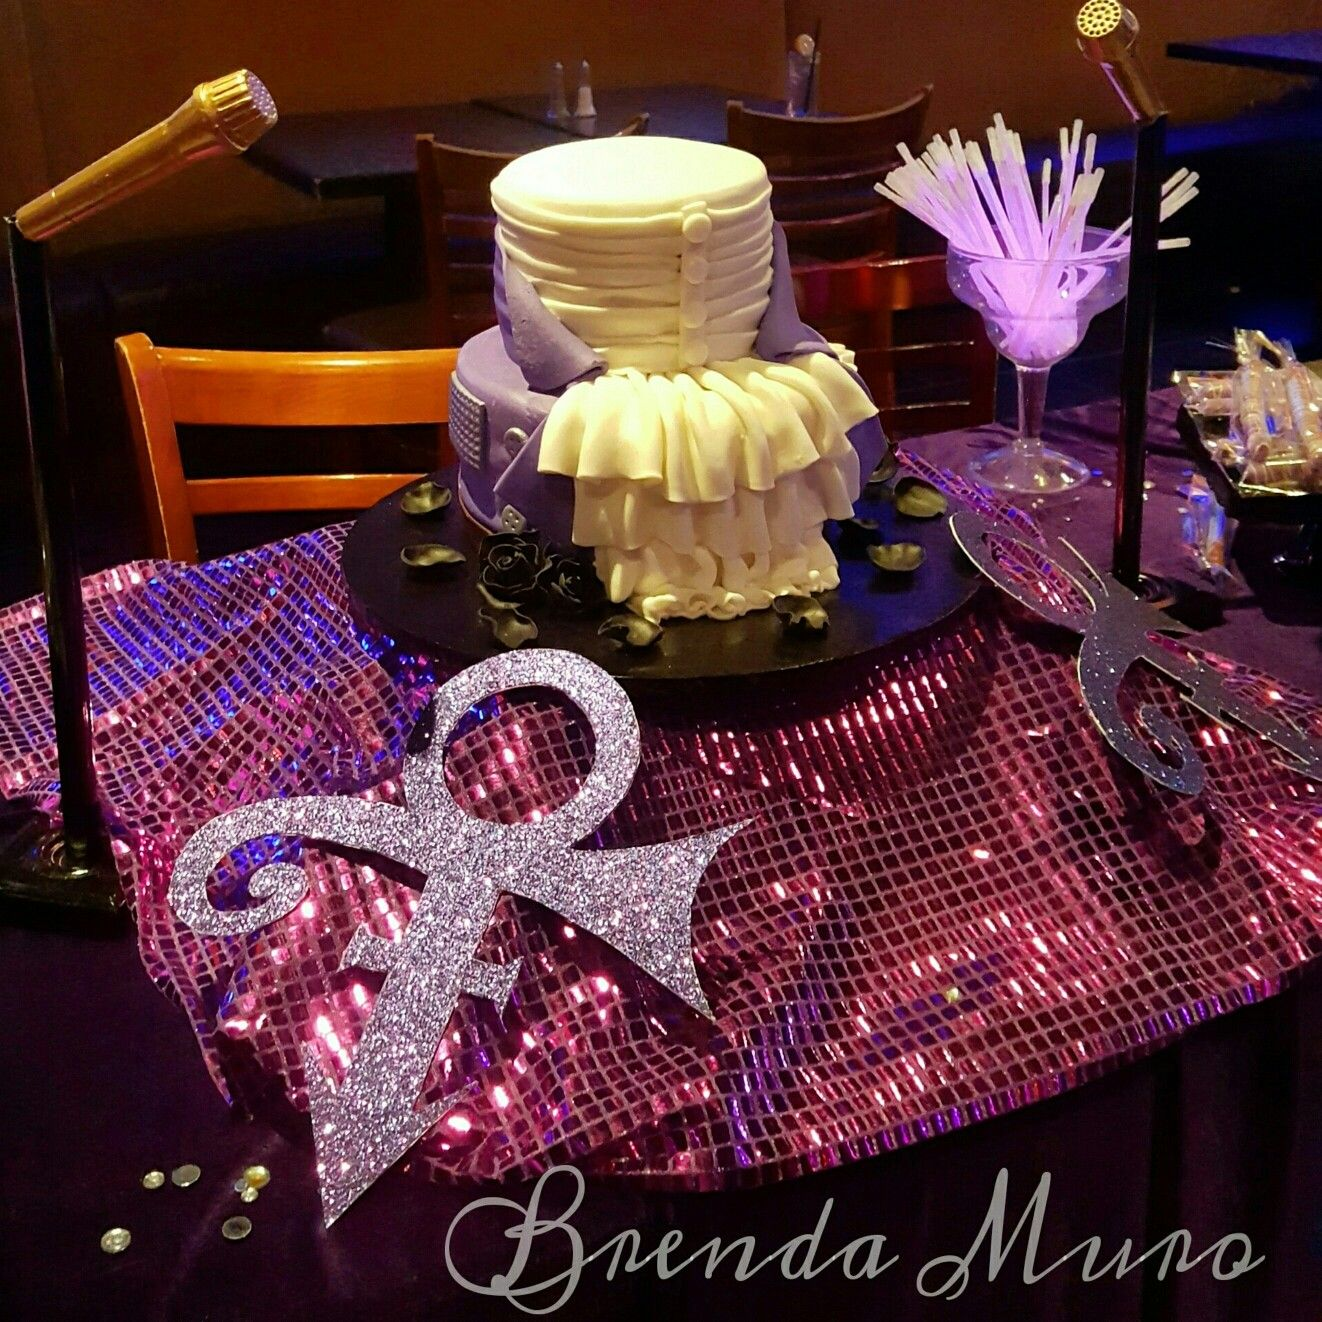 Prince Purple Rain themed event